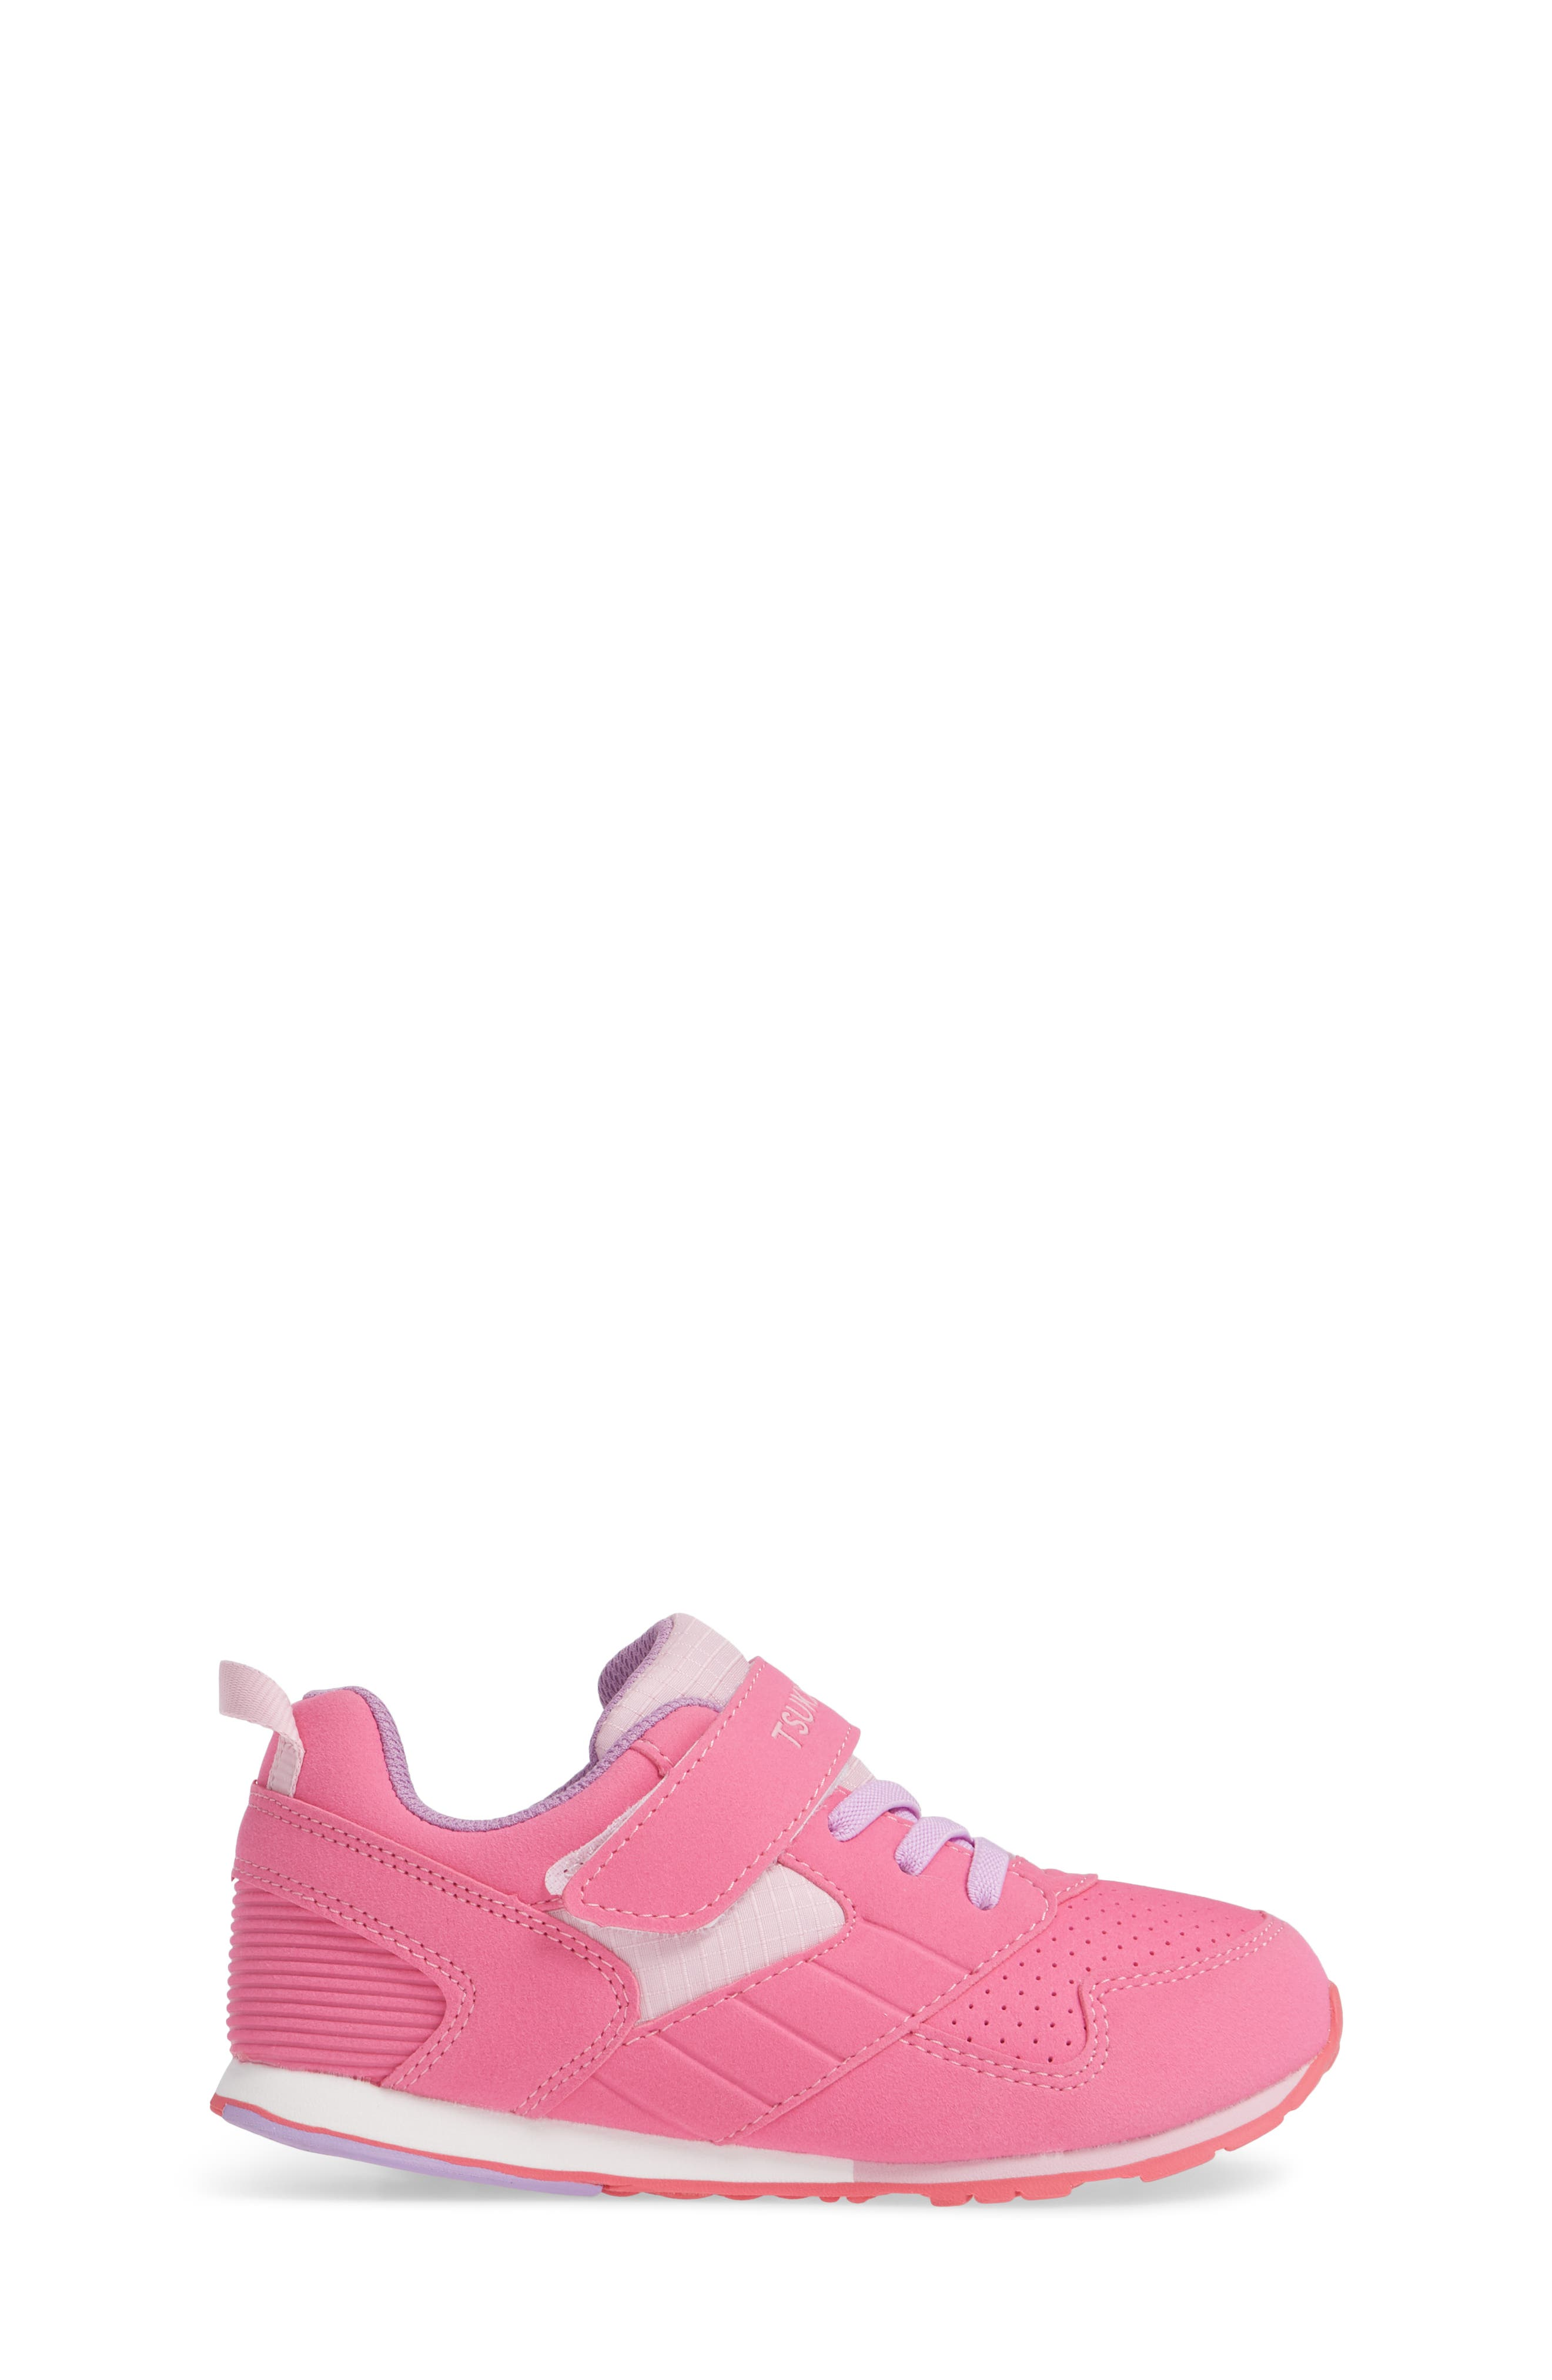 Racer Washable Sneaker,                             Alternate thumbnail 3, color,                             FUCHSIA/ PINK